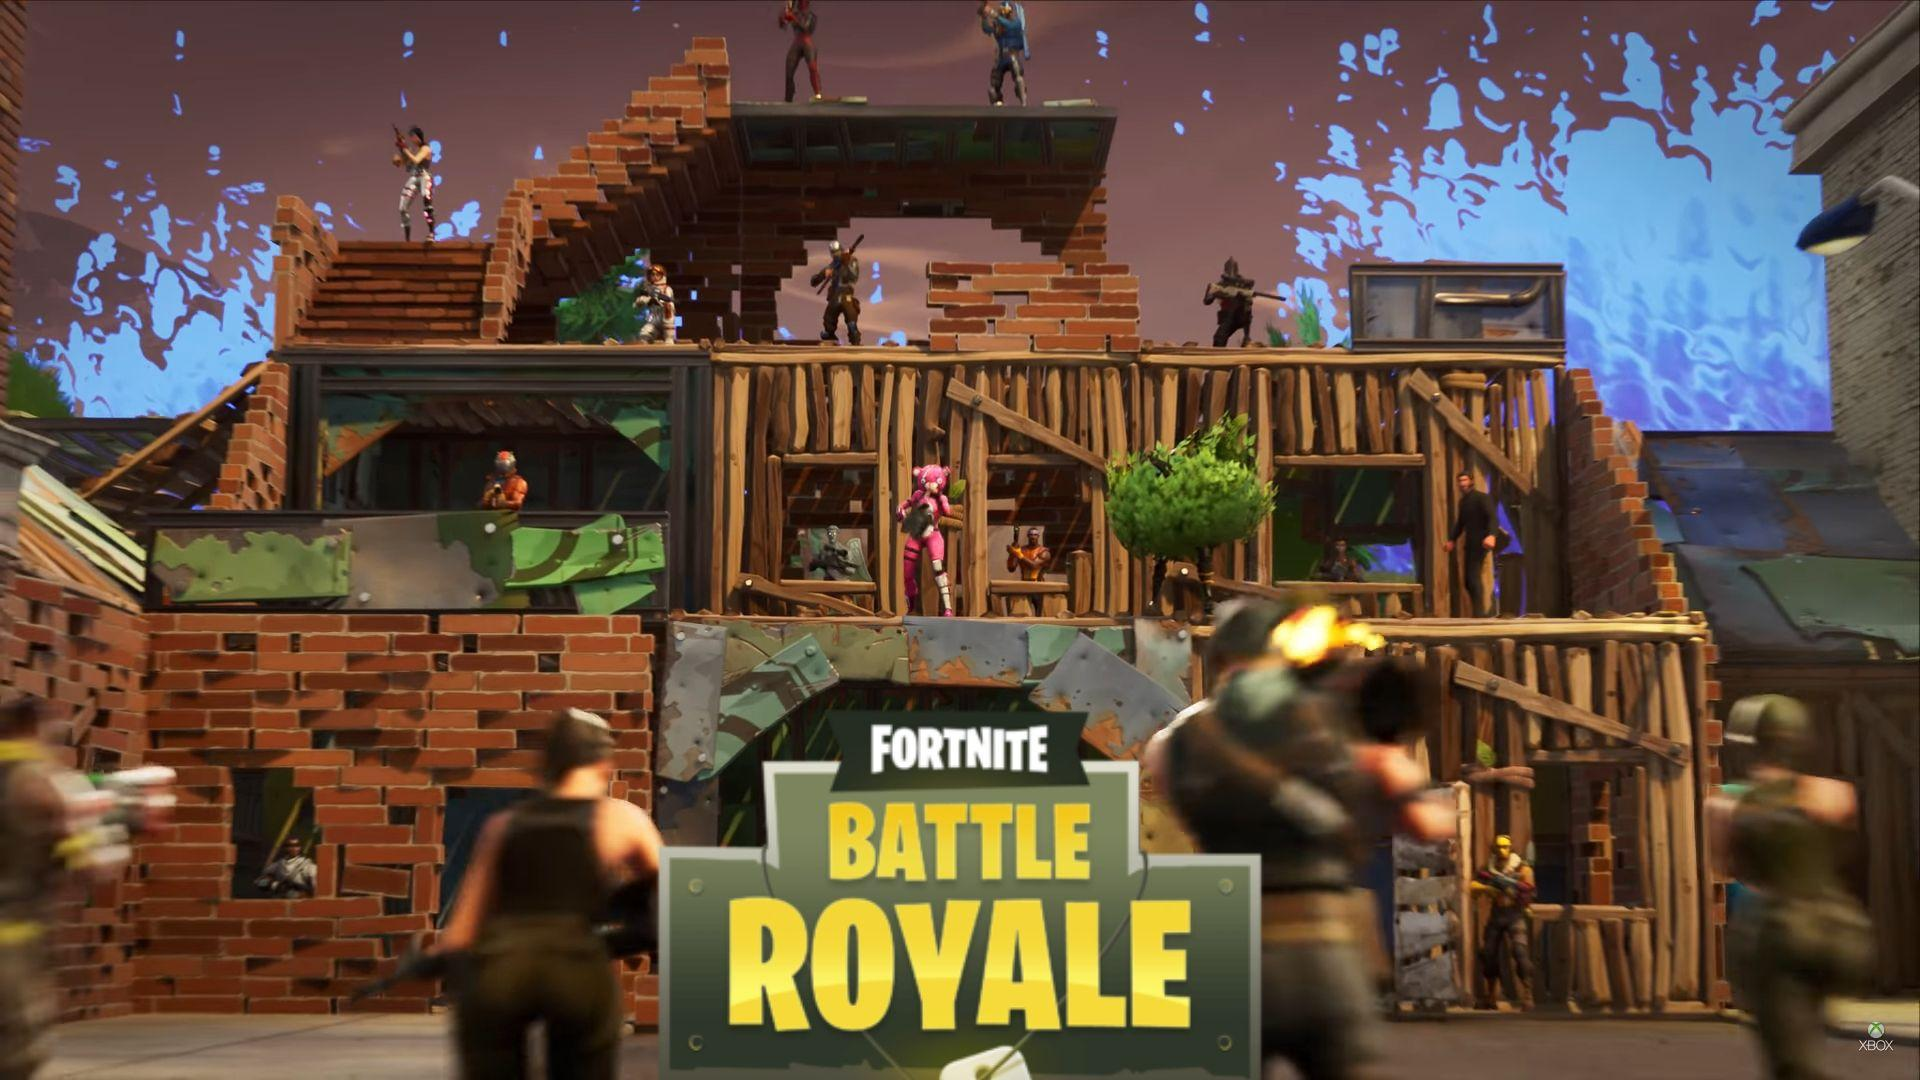 Fortnite Battle Royale Introduces Teams Of 20 In New Limited Time ...